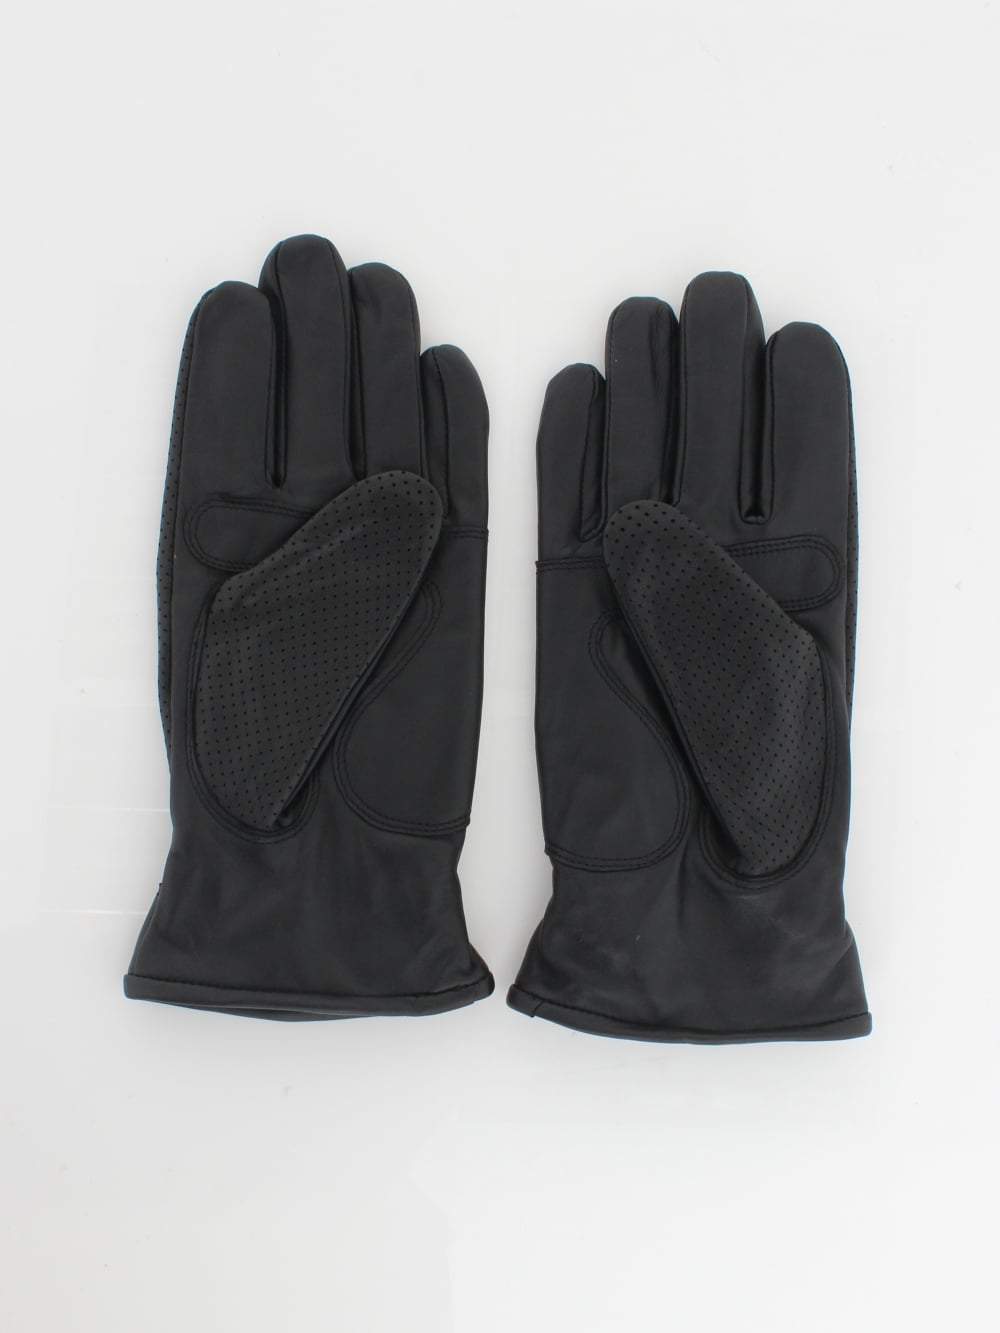 Perforated Leather Gloves - Black Leather